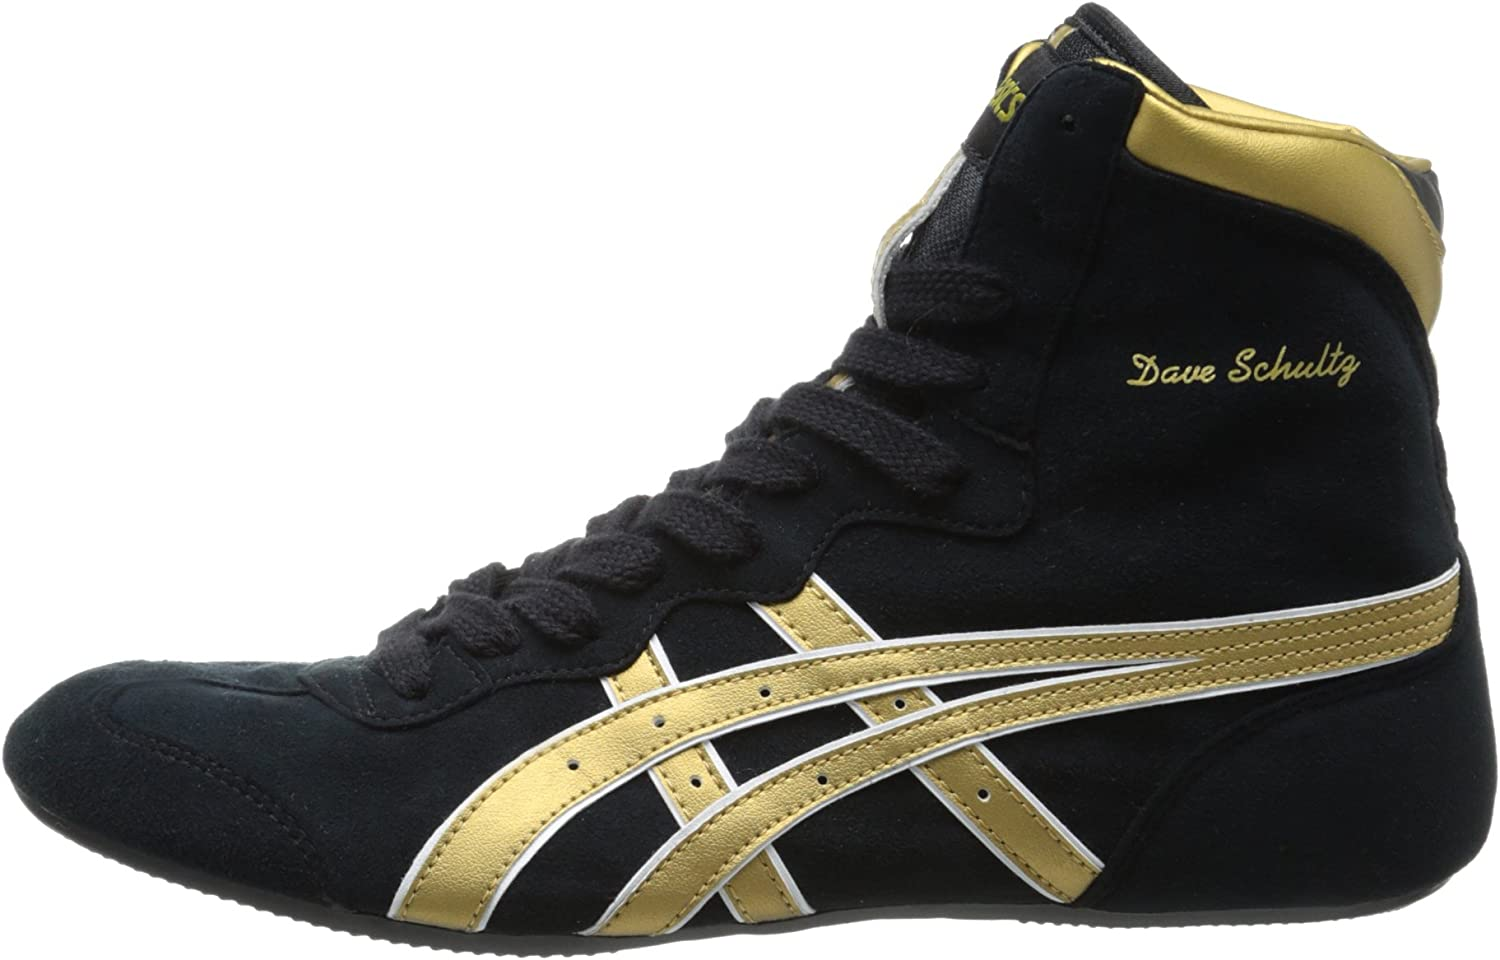 asics wrestling shoes dave schultz price